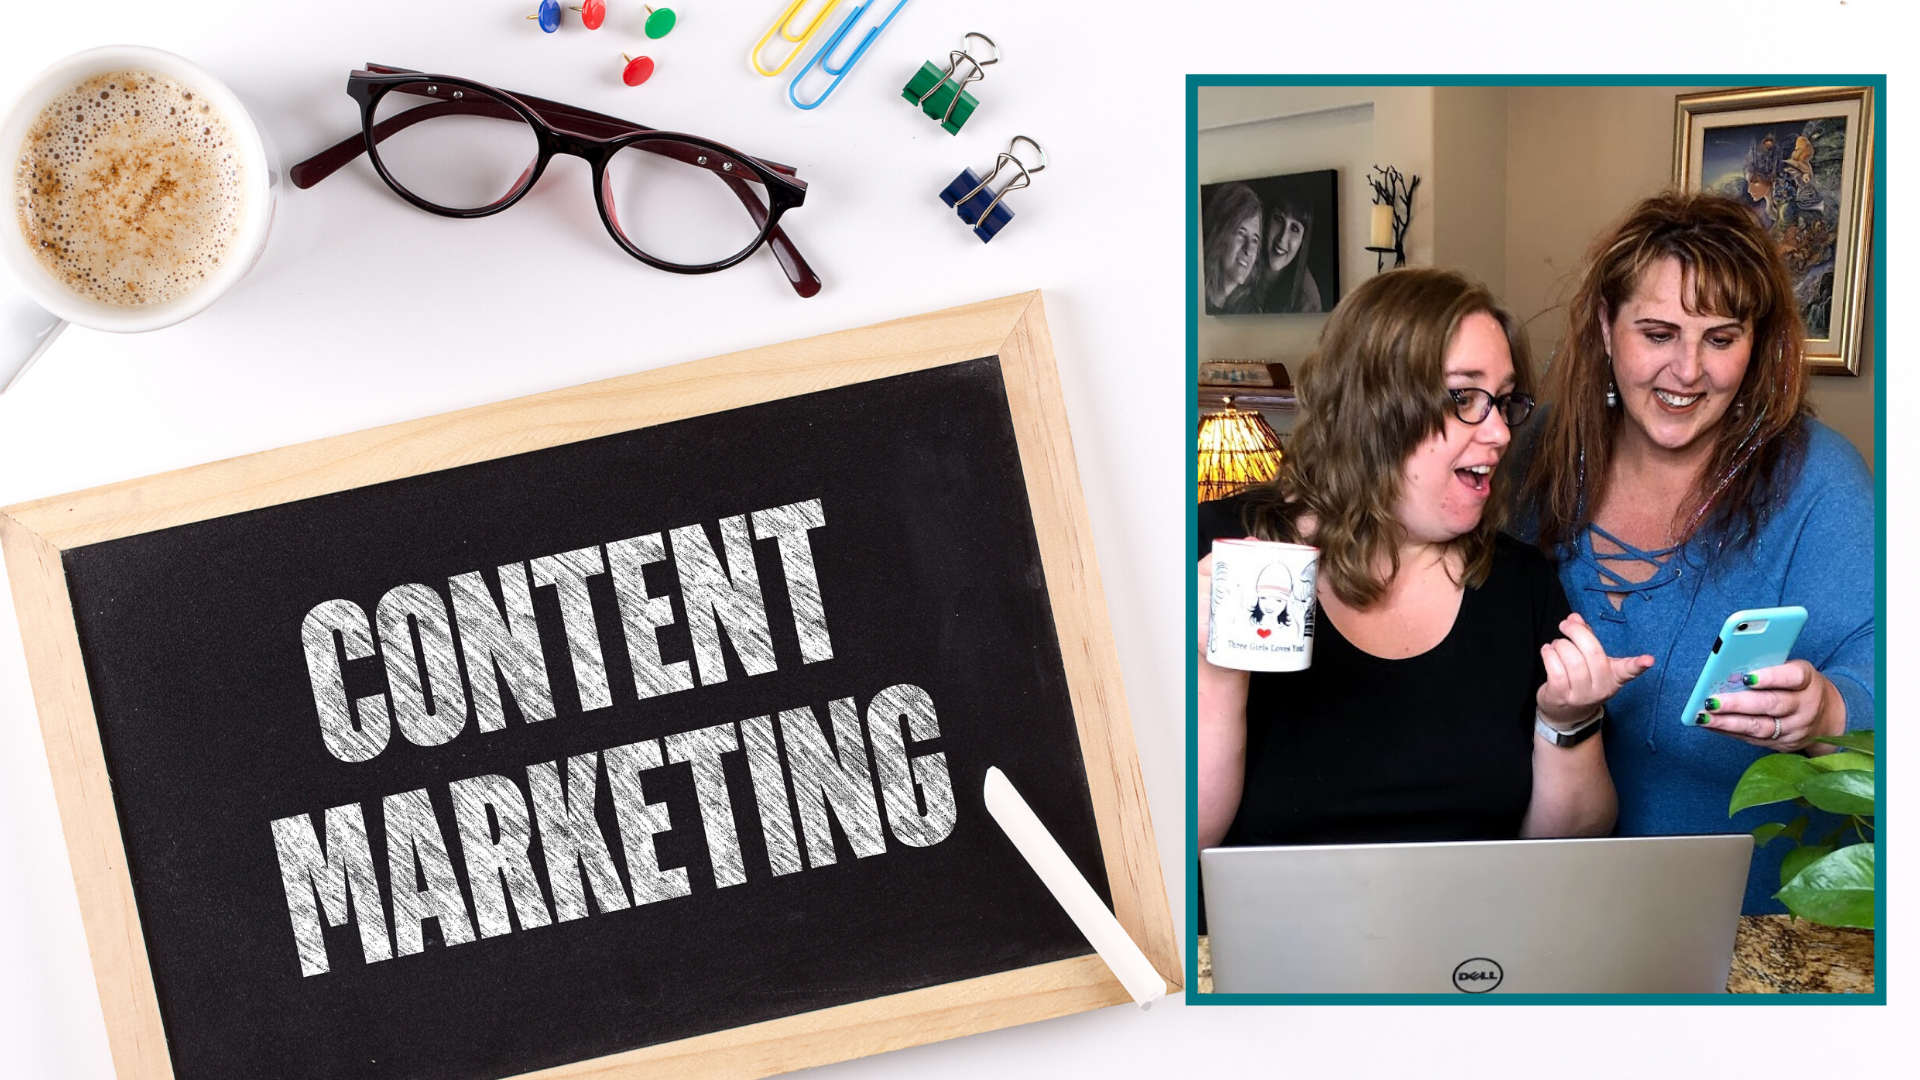 5 Reasons You Need To Hire A Content Marketing Expert